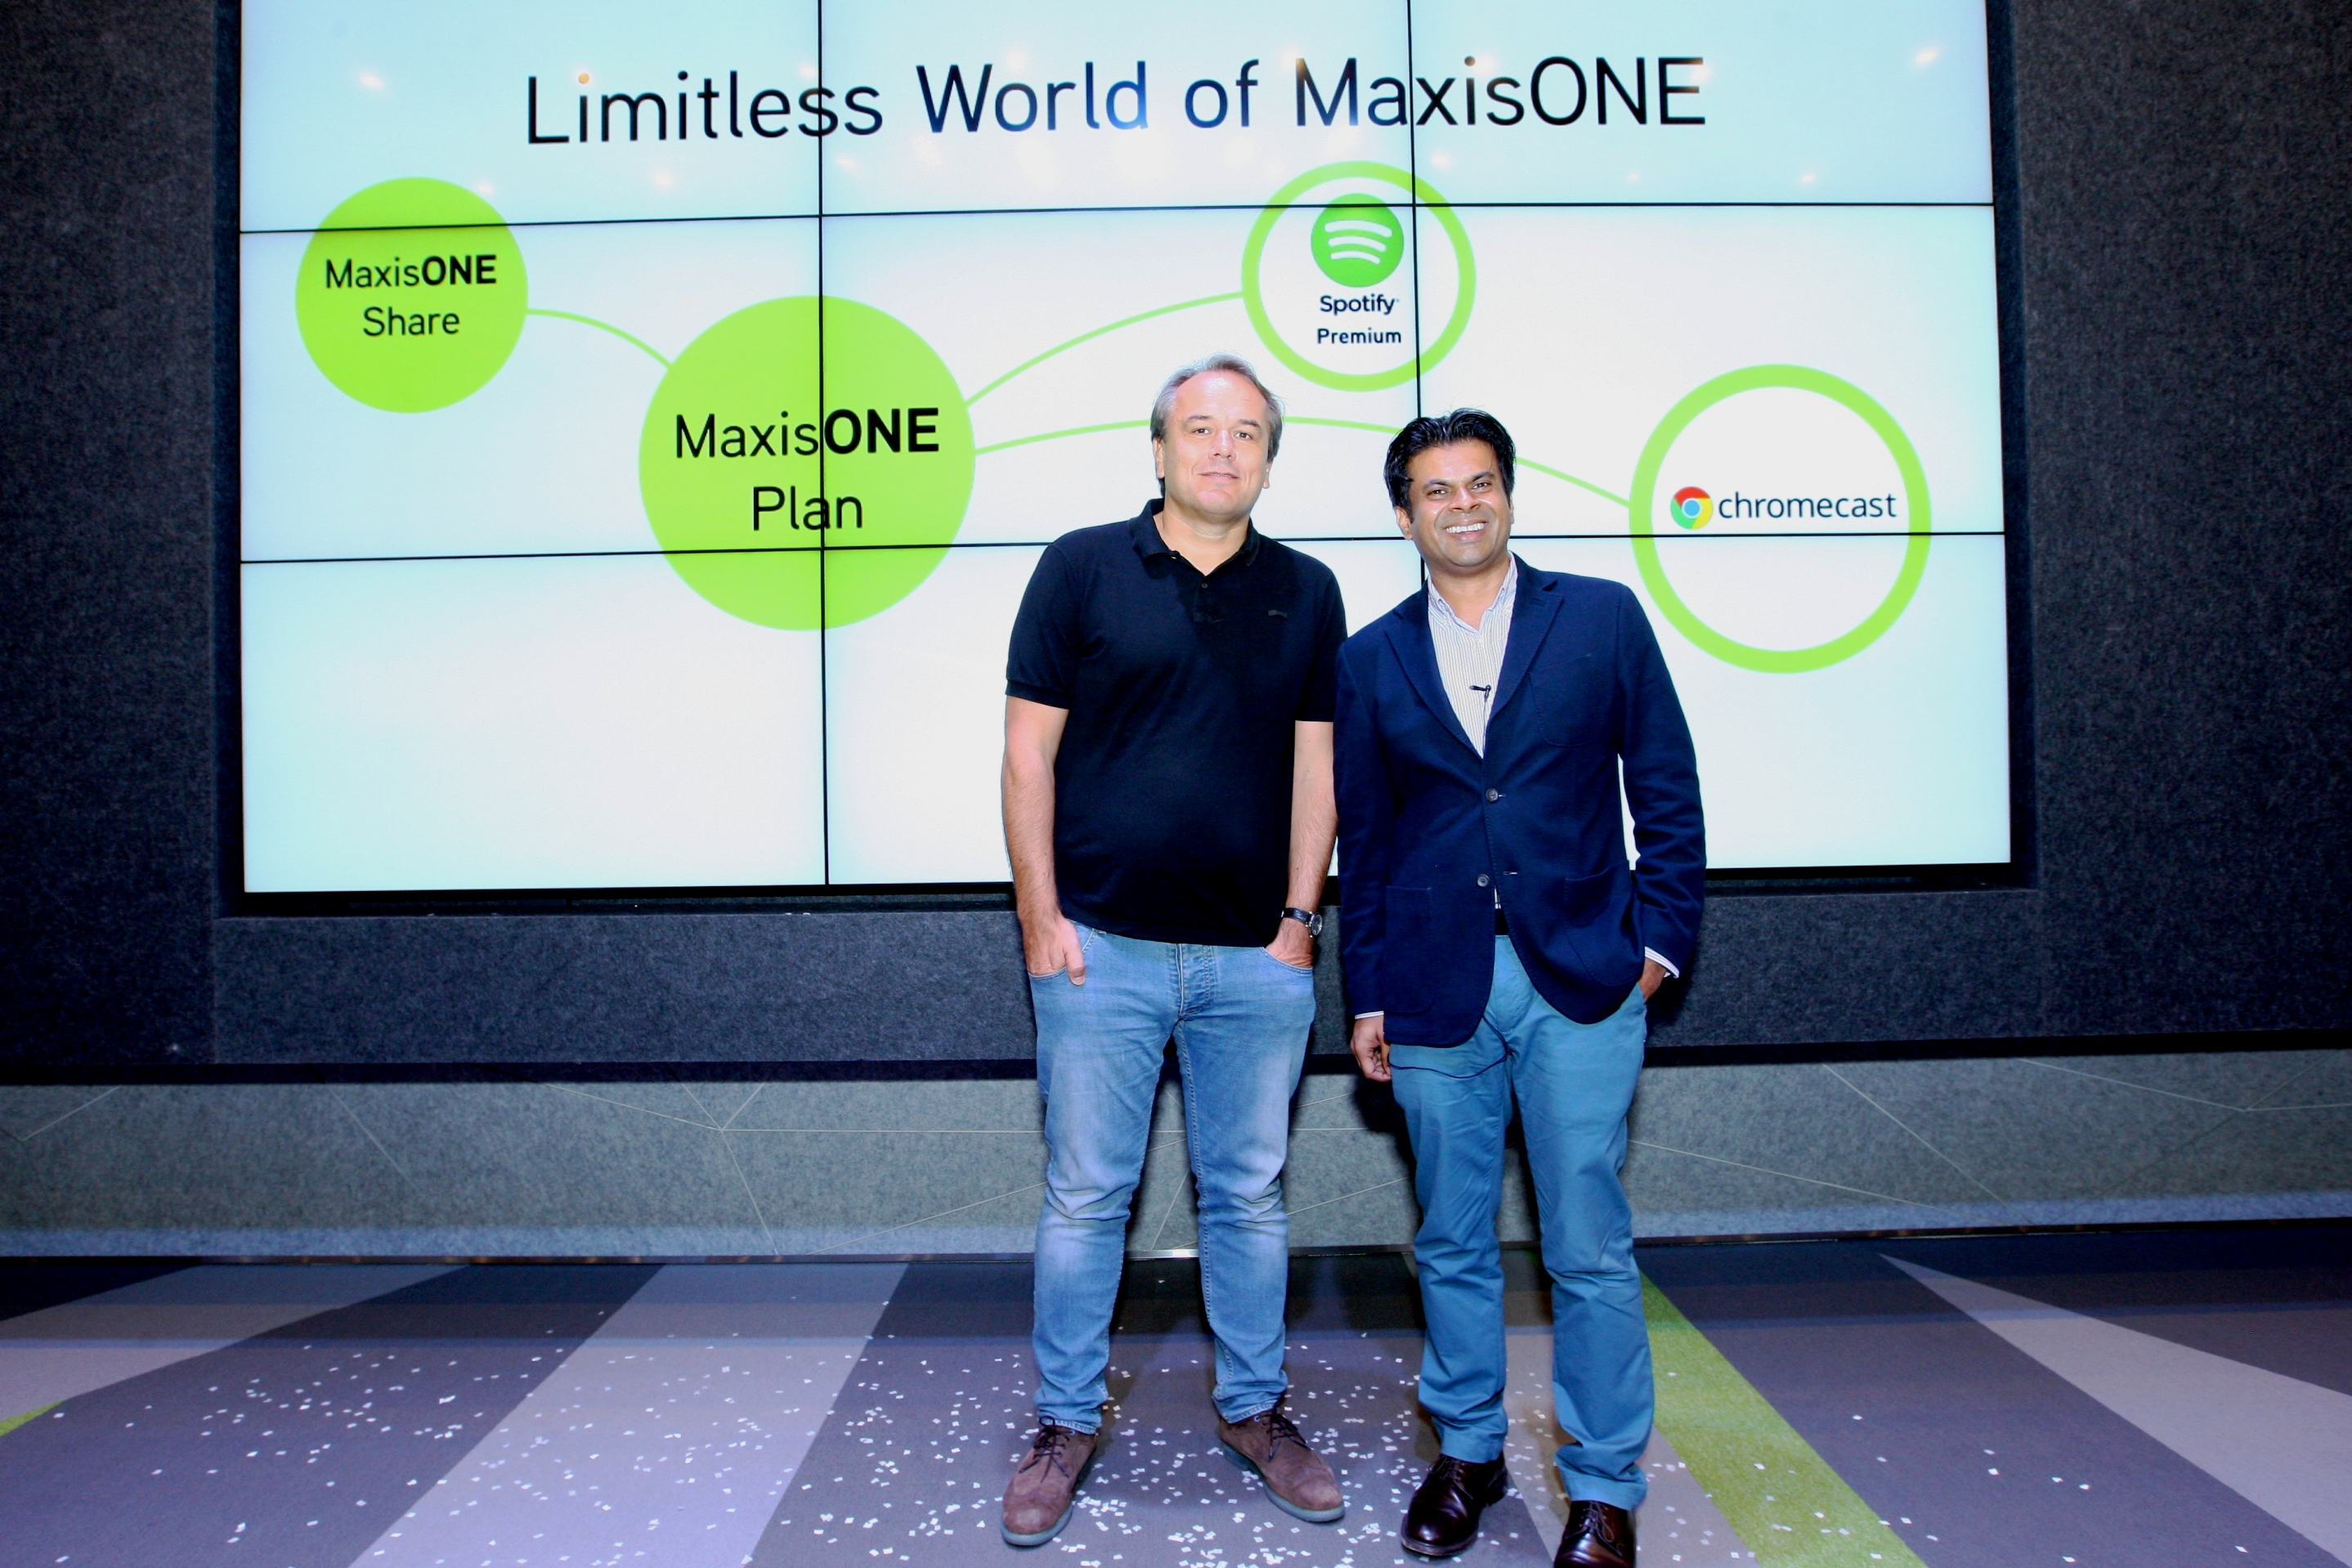 Morten Lundal, Maxis' Chief Executive Officer (left) and Dushyan Vaithiyanathan, Maxis' Head of Consumer Business (right), at the Limitless World of MaxisONE showcase event held at Menara Maxis earlier today.